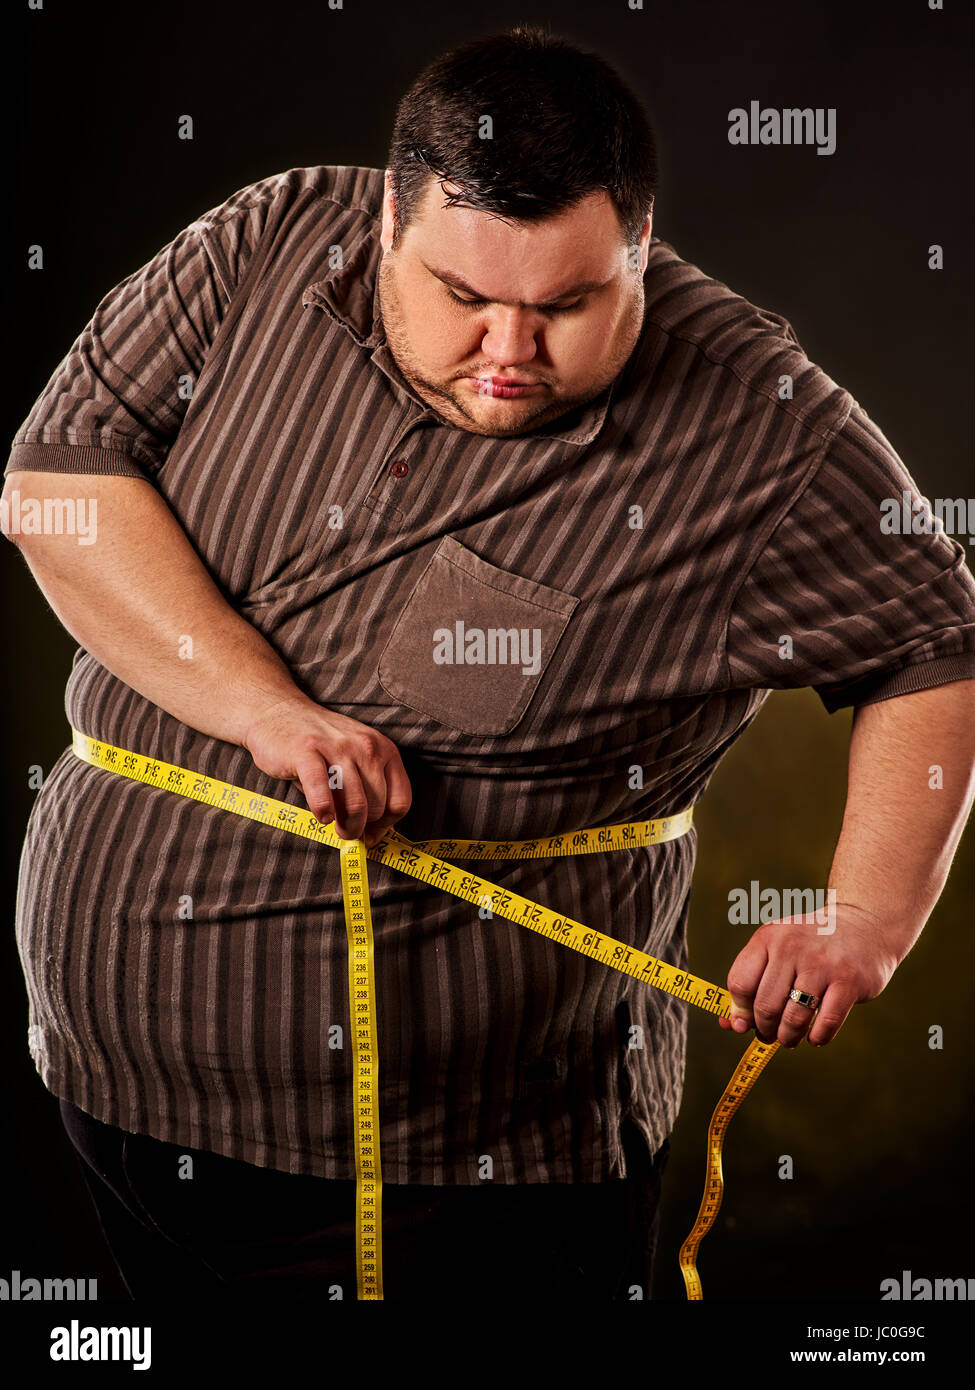 Man belly fat with tape measure weight loss around body on